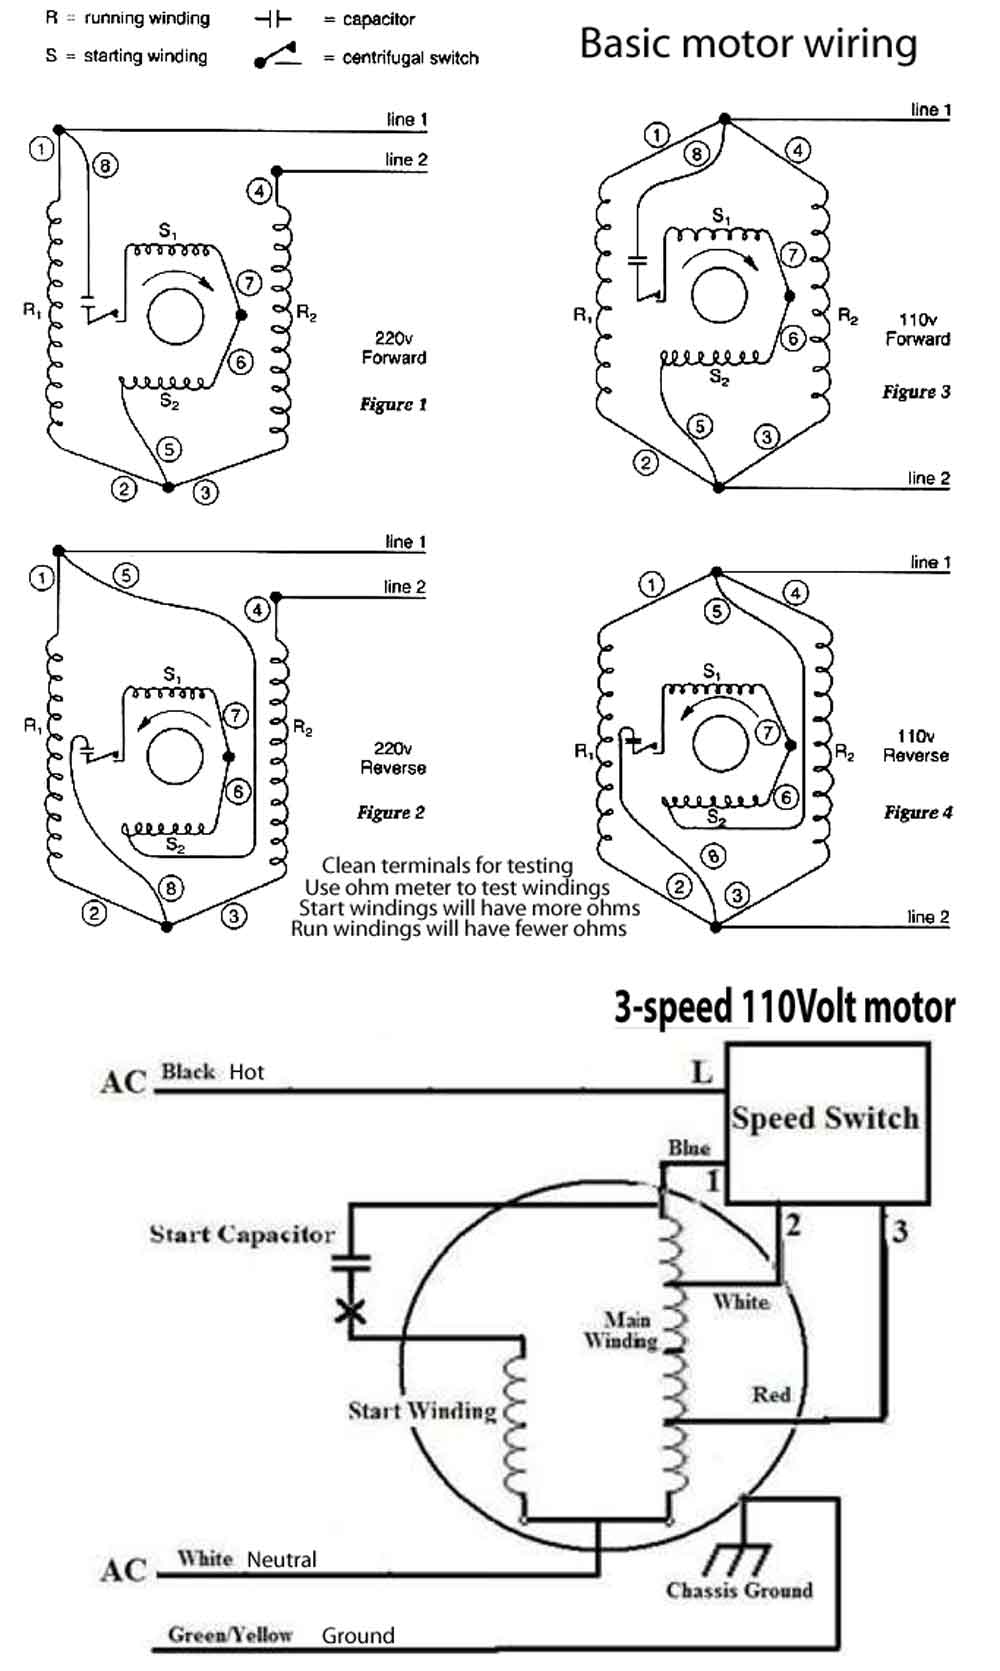 How To Wire 3 Speed Fan Switch Wiring Schematics Motor